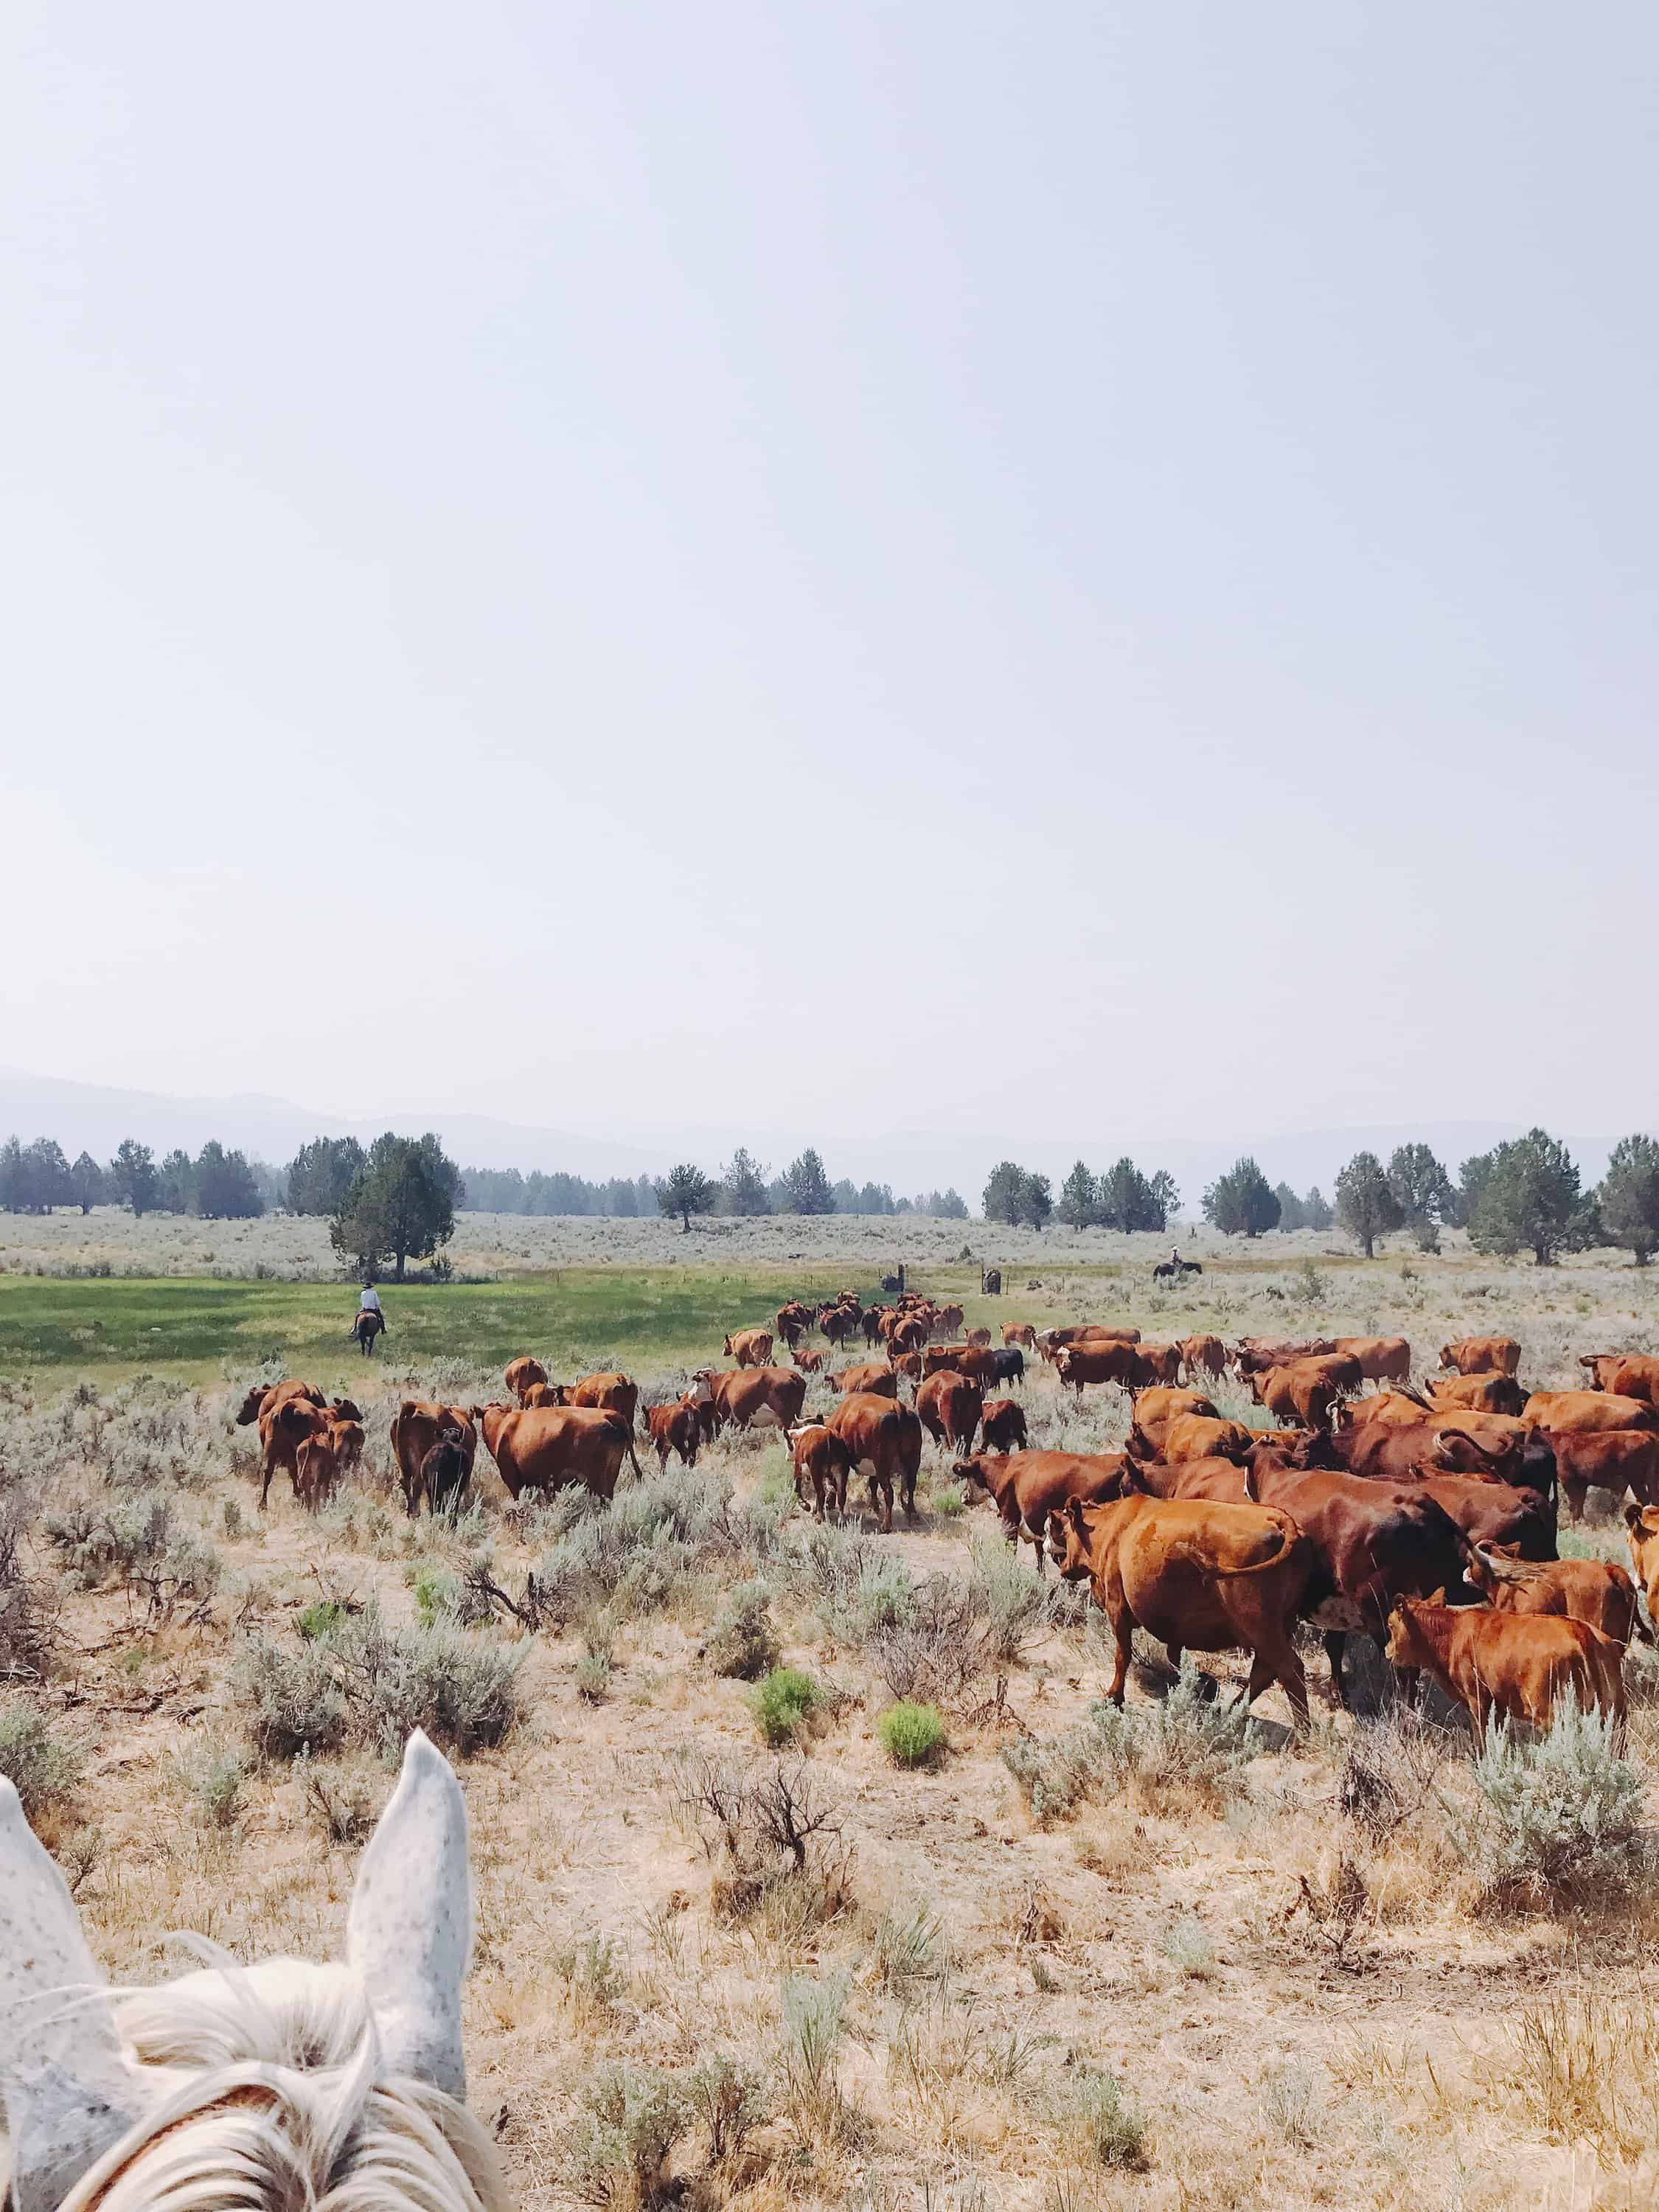 """This Week on the Ranch"" is a weekly series sharing snippets and stories from life on the range.  Summertime is spent mostly on horseback moving cattle & horses from field to field. I get a ton of questions asking why we move the animals around so much. The answer is simple: once they eat the grass down, they have to be moved to a new field. That whole grass-fed thing, ya know?"